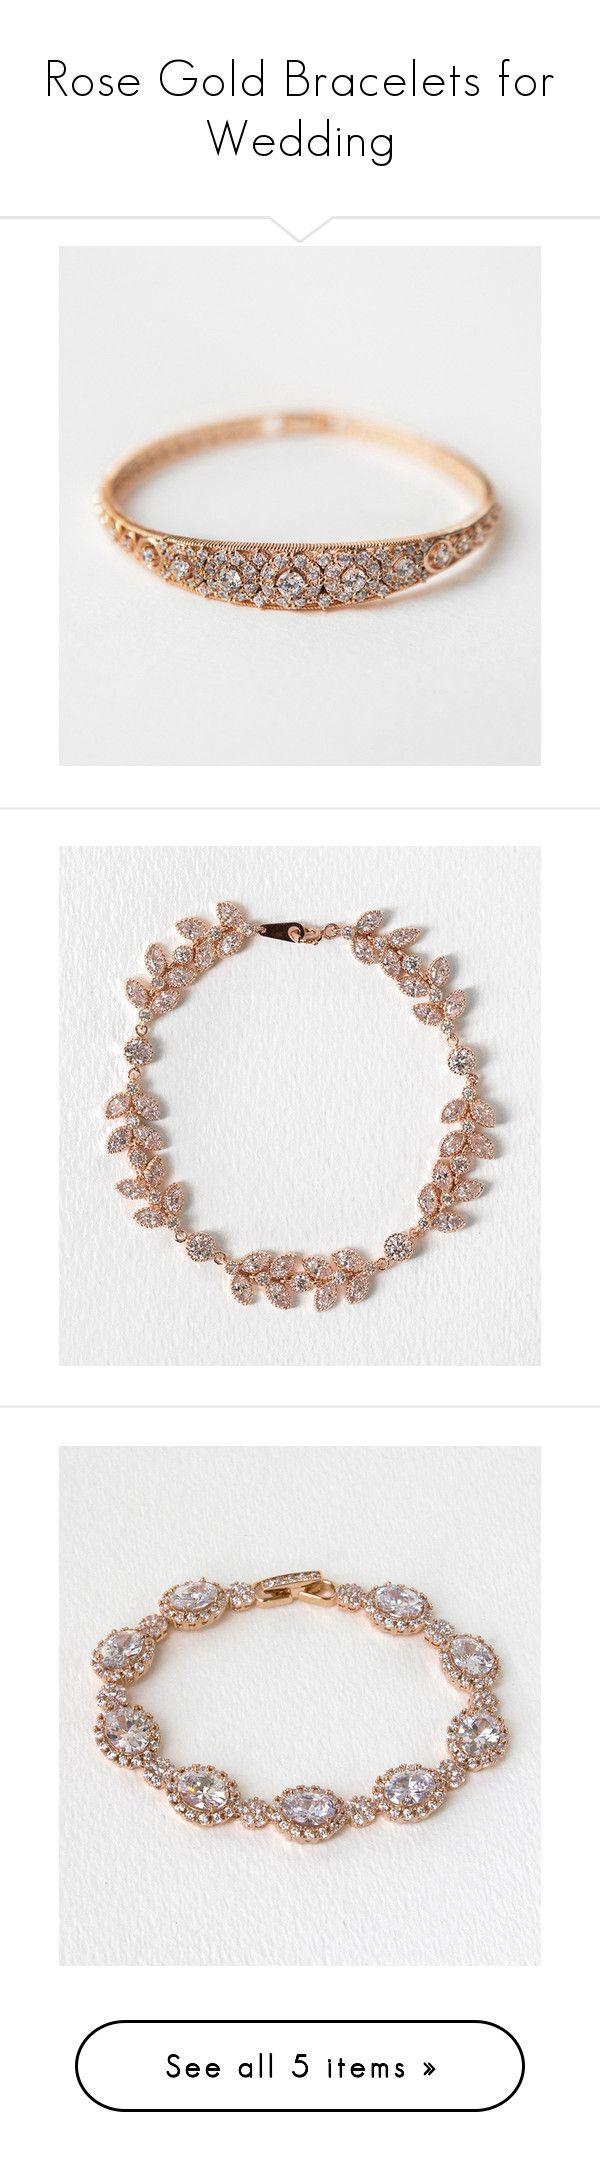 Rose Gold Bracelets for Wedding by amyo-bridal on Polyvore featuring women's fashion, jewelry, bracelets, art deco bridal jewelry, bridal jewellery, rose gold bangle, bangle bracelet, statement bracelet, rose gold bridal jewelry and boho jewelry